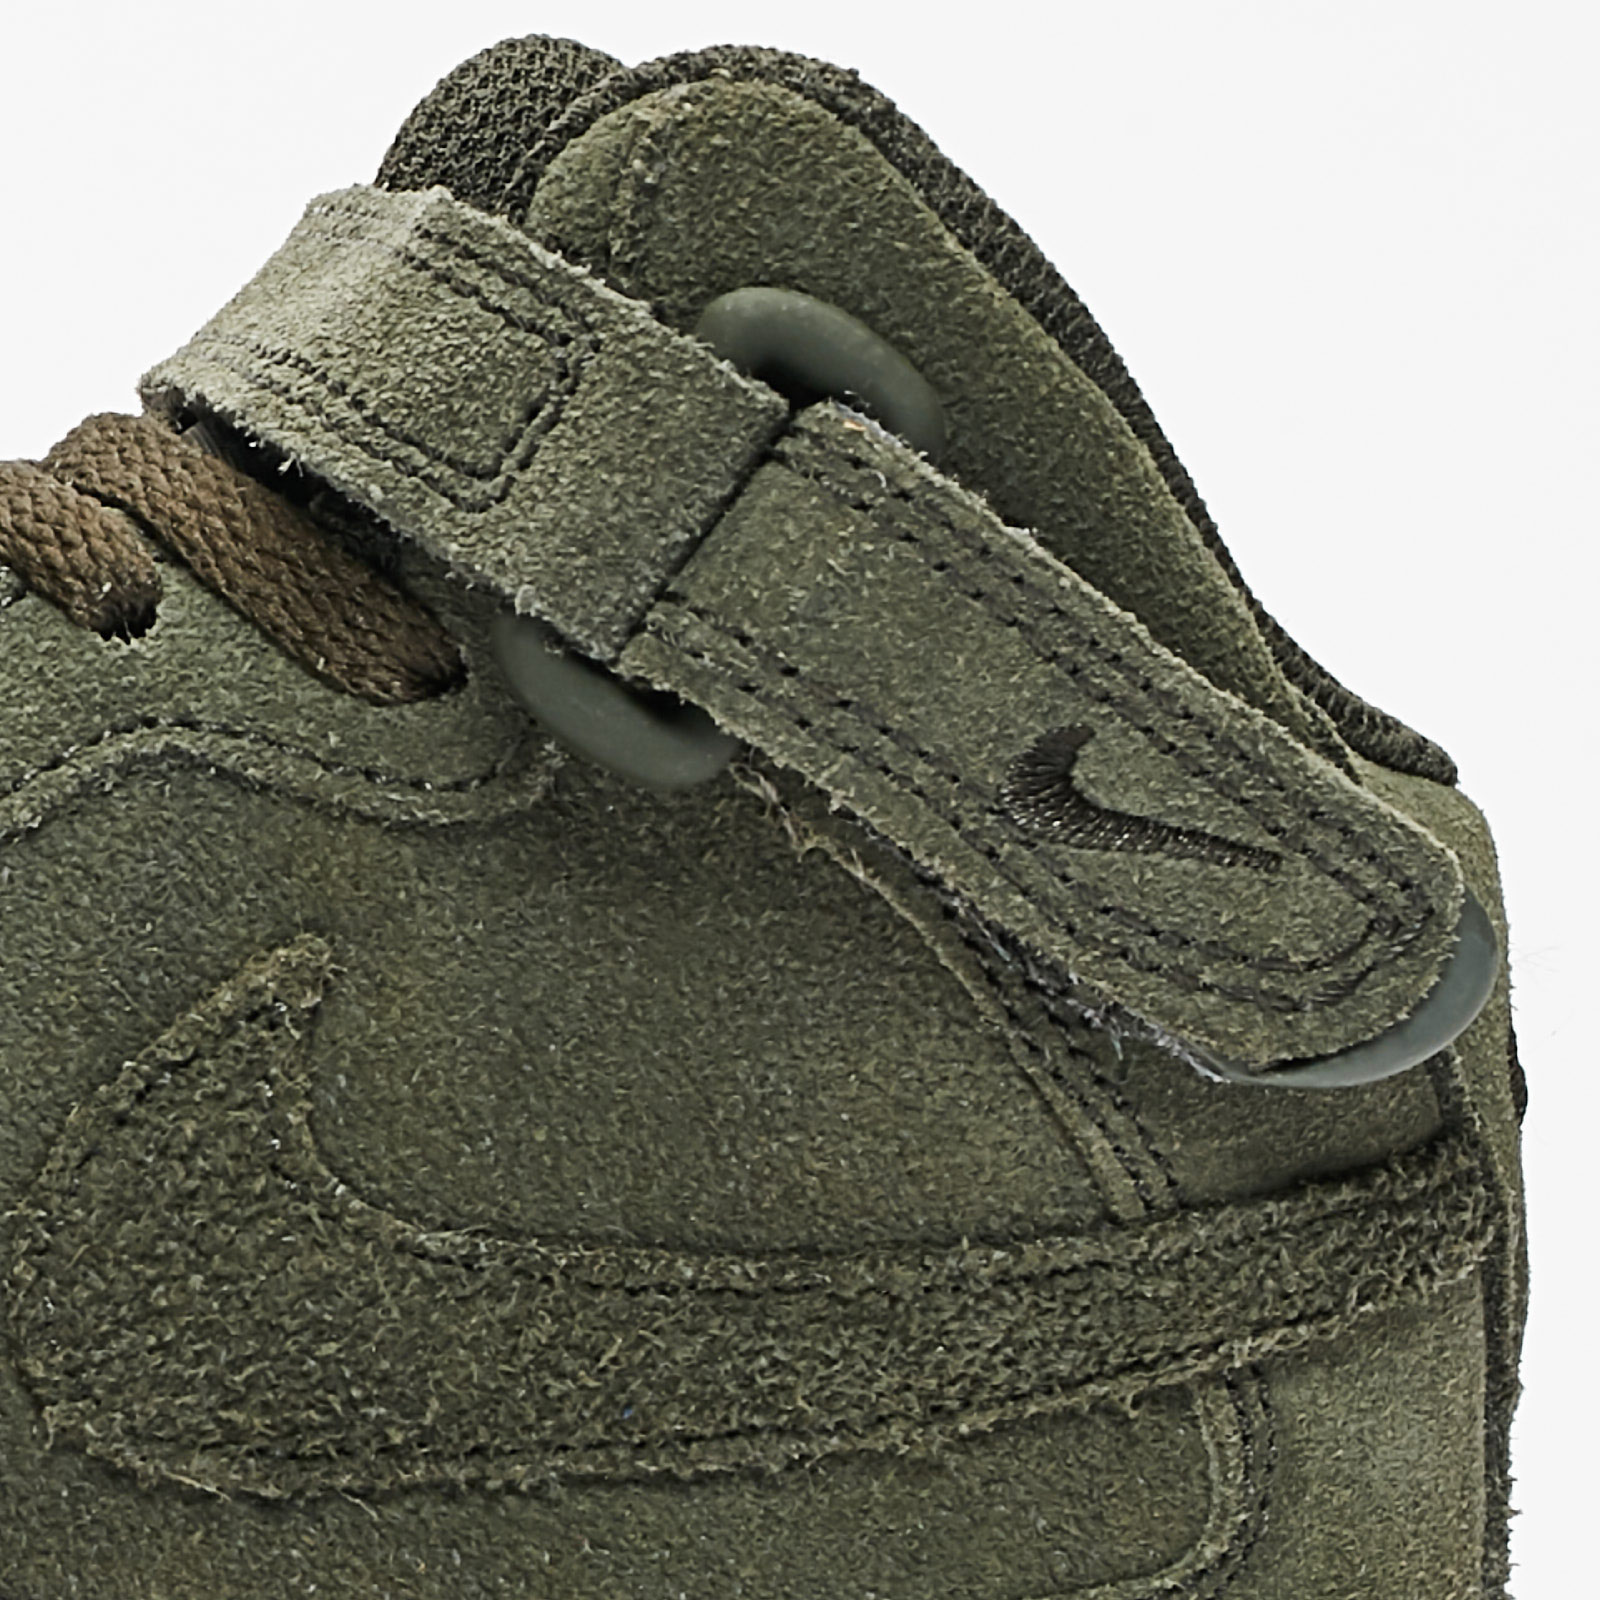 check out 752ce e962f Nike Air Force 1 Mid LV8 (PS) - 859337-300 - Sneakersnstuff ...